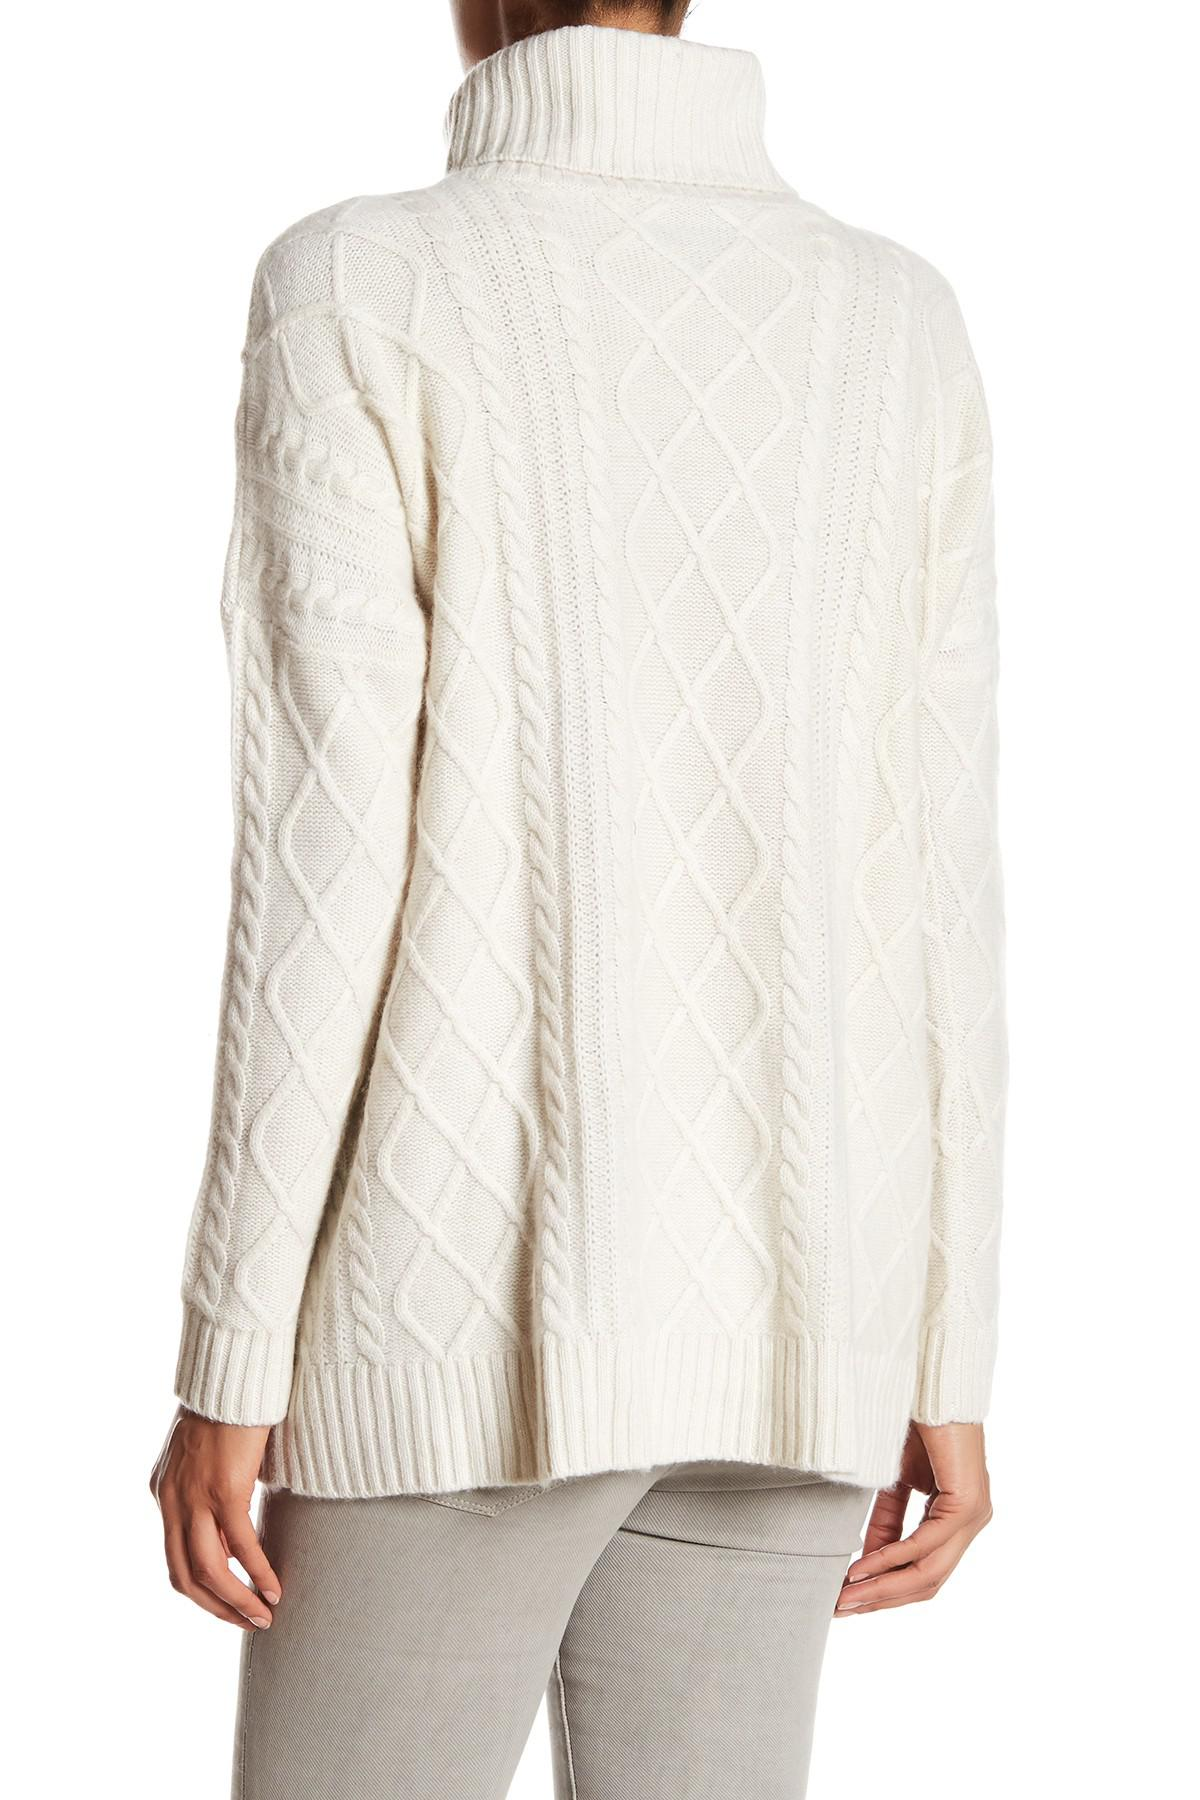 Philosophy cashmere Heavy Cable Fisherman Cashmere Sweater   Lyst